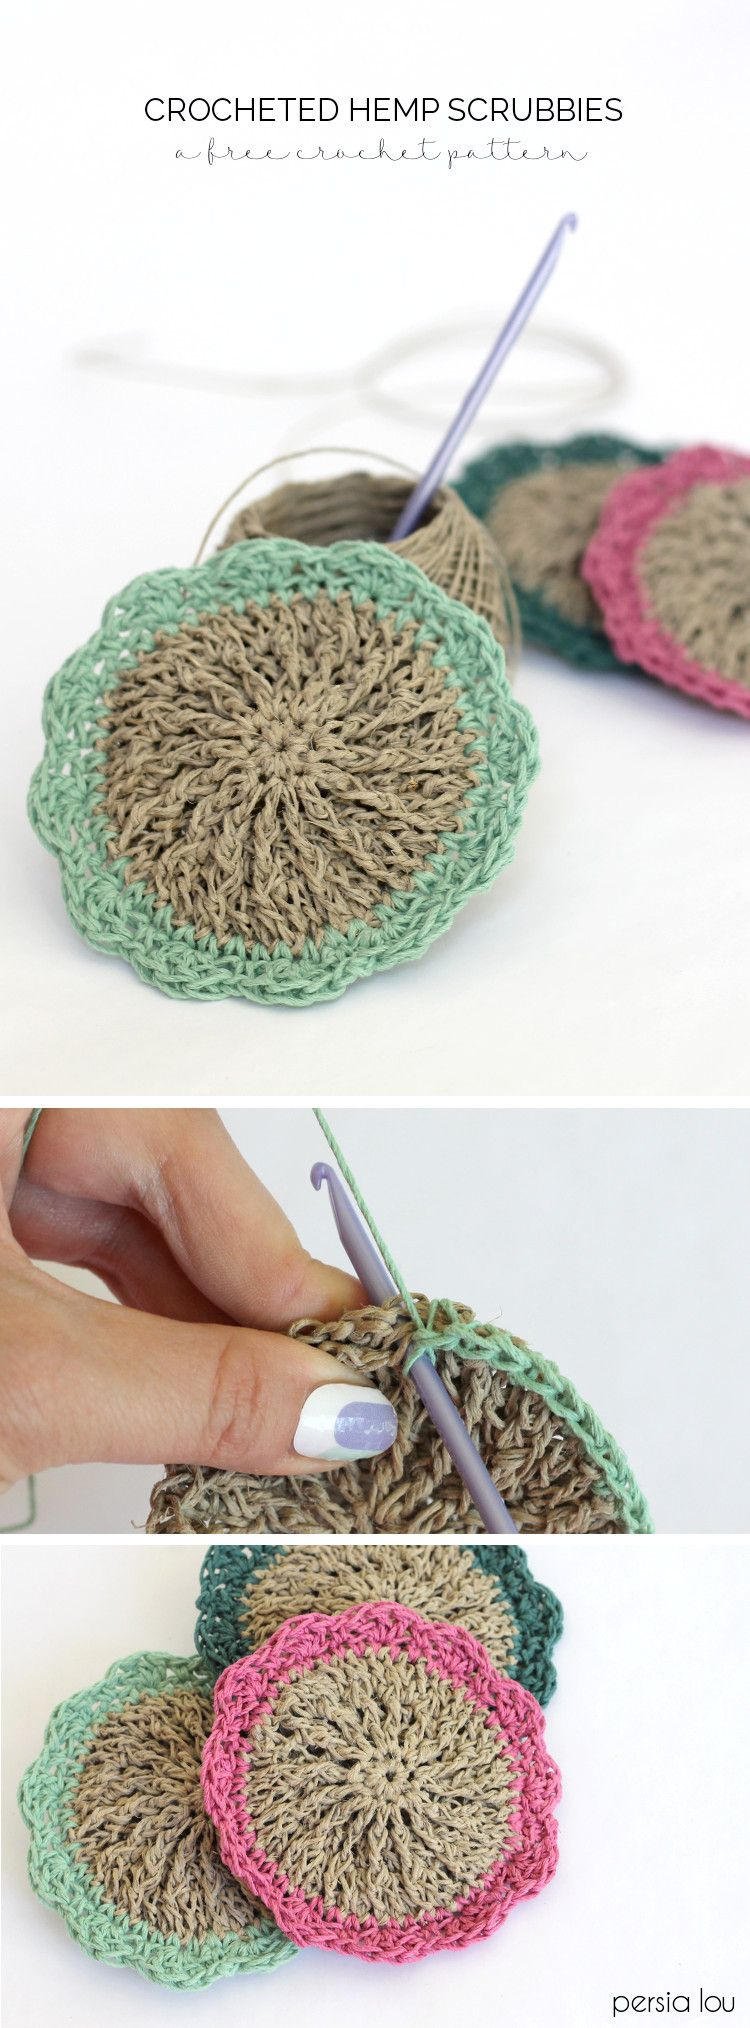 Crocheted Hemp Scrubbies Free Pattern Bloggers Best Diy Ideas Dinah Crochet Daisy Dish Cloth Is Naturally Antibacterial Which Makes These Little Scrubby Pads Perfect For Cleaning